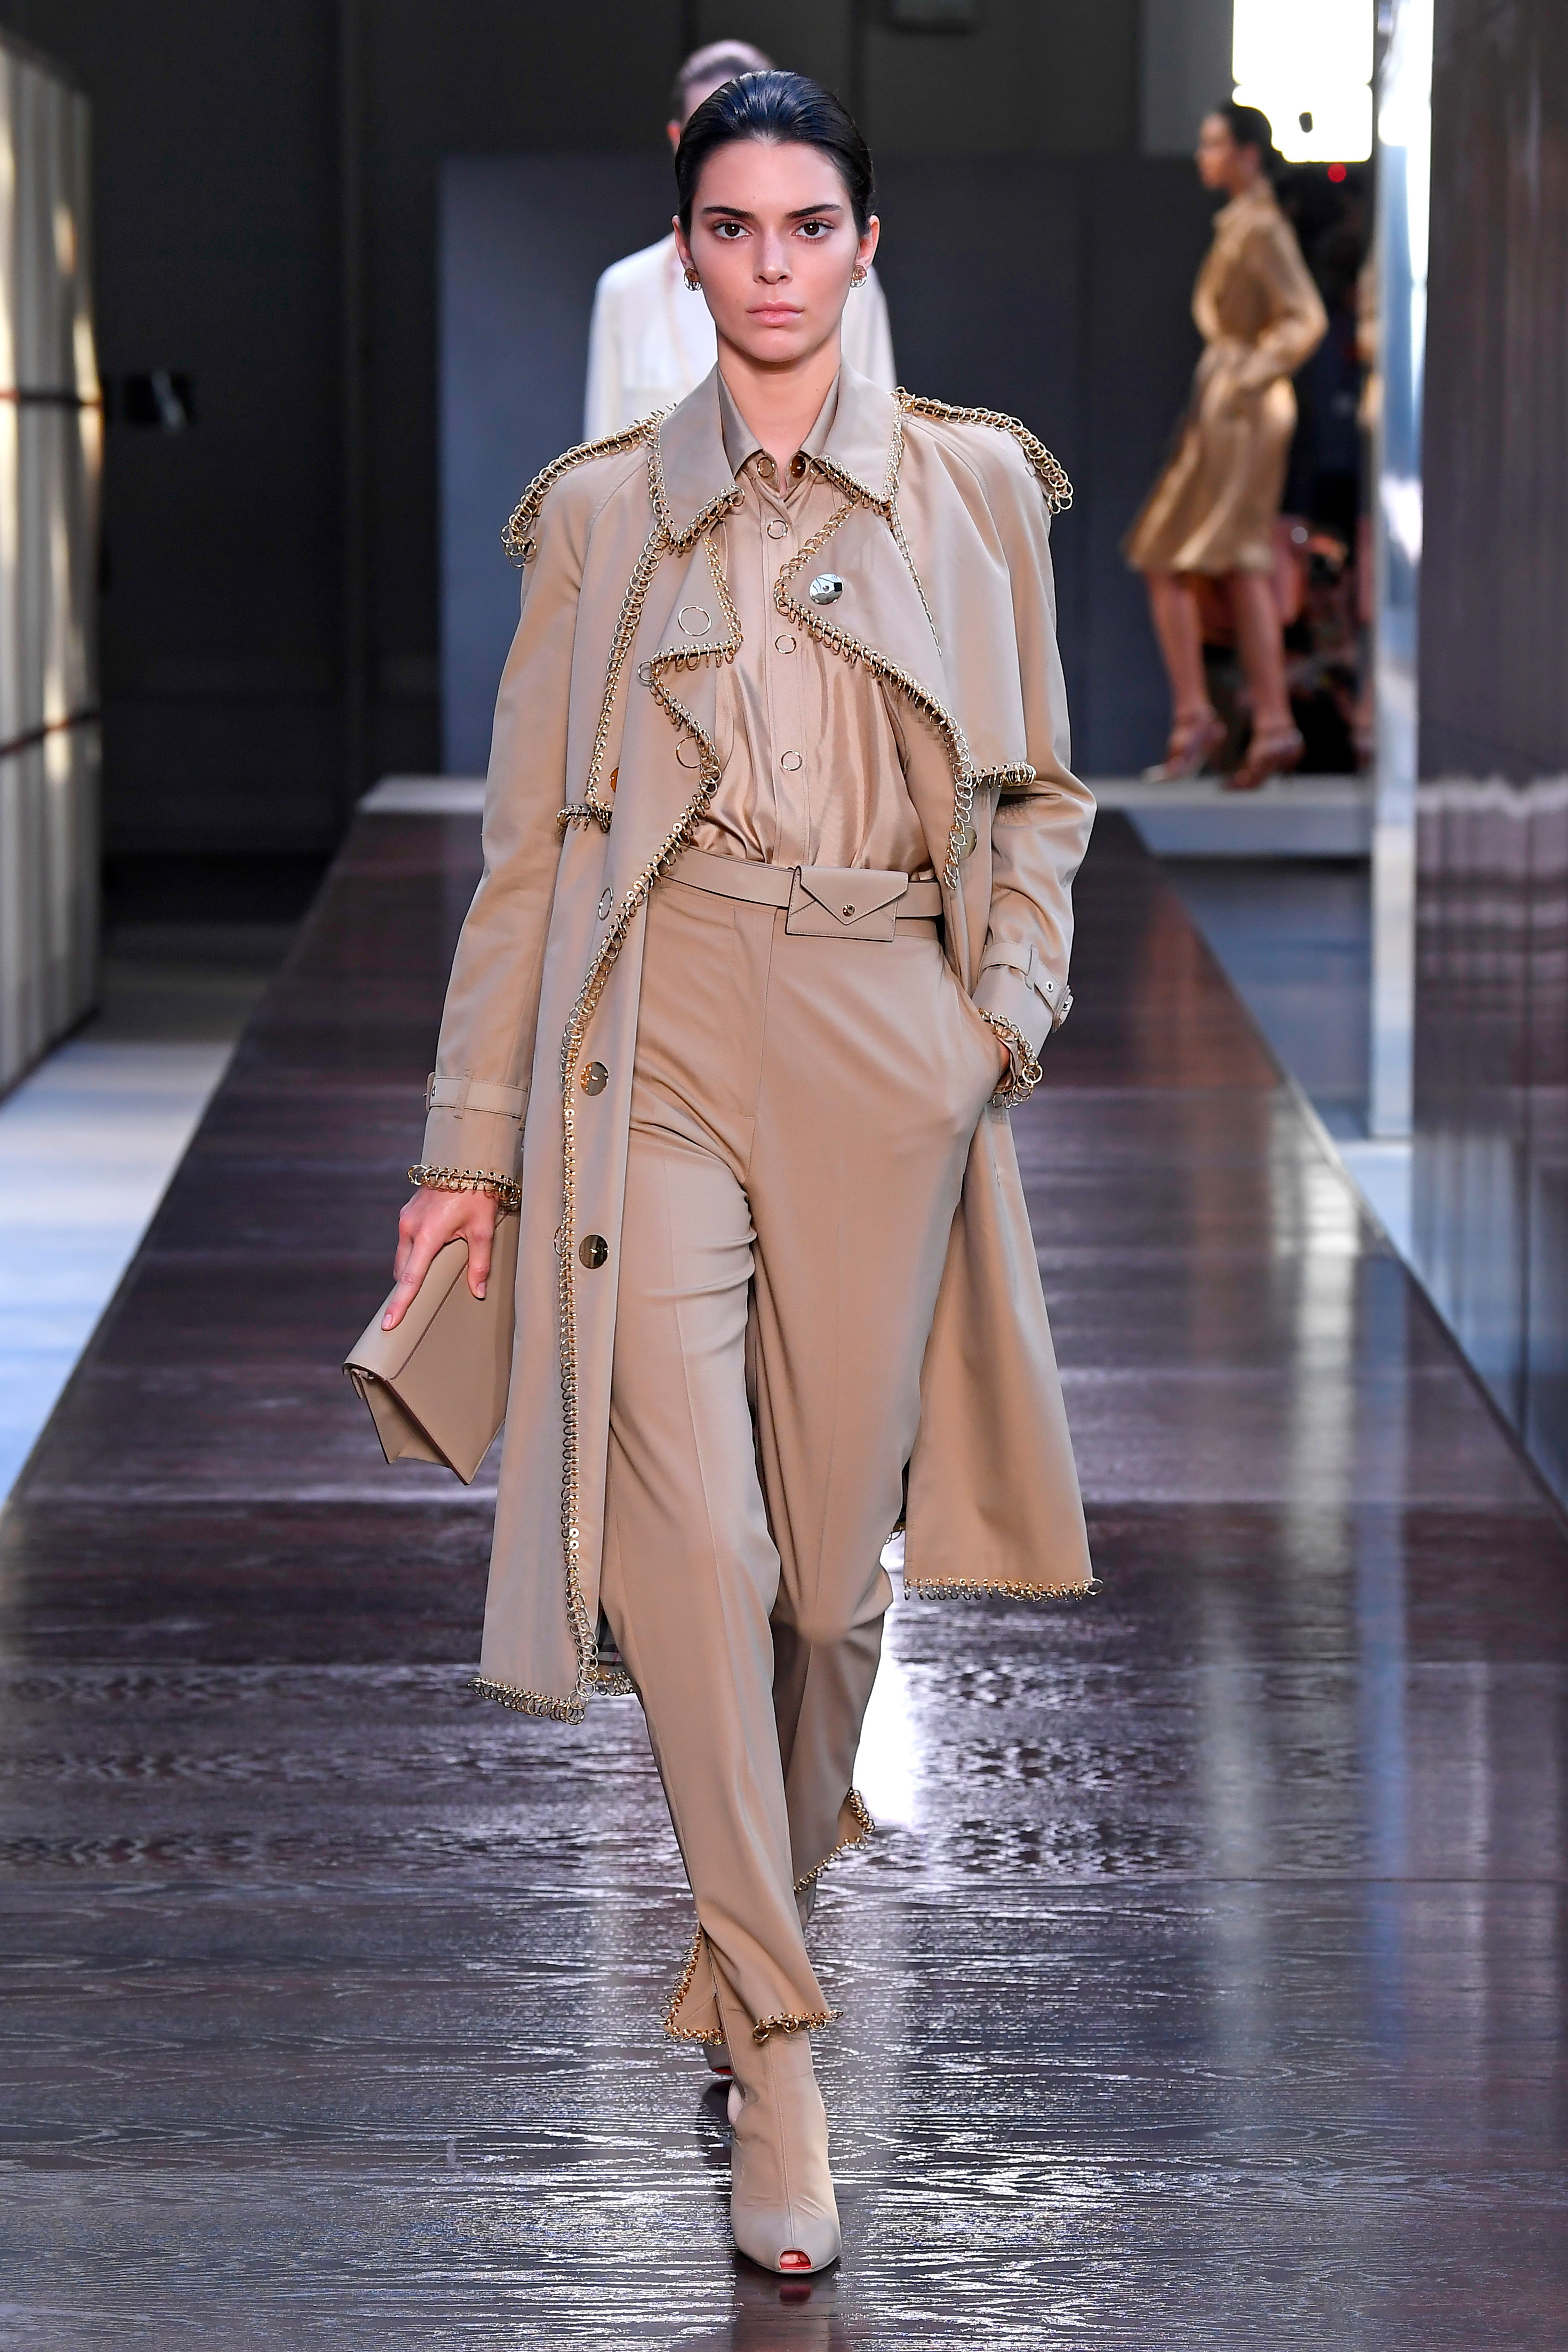 Kendall Jenner appears on the catwalk for the Burberry show at London Fashion Week on Sept. 17, 2018.